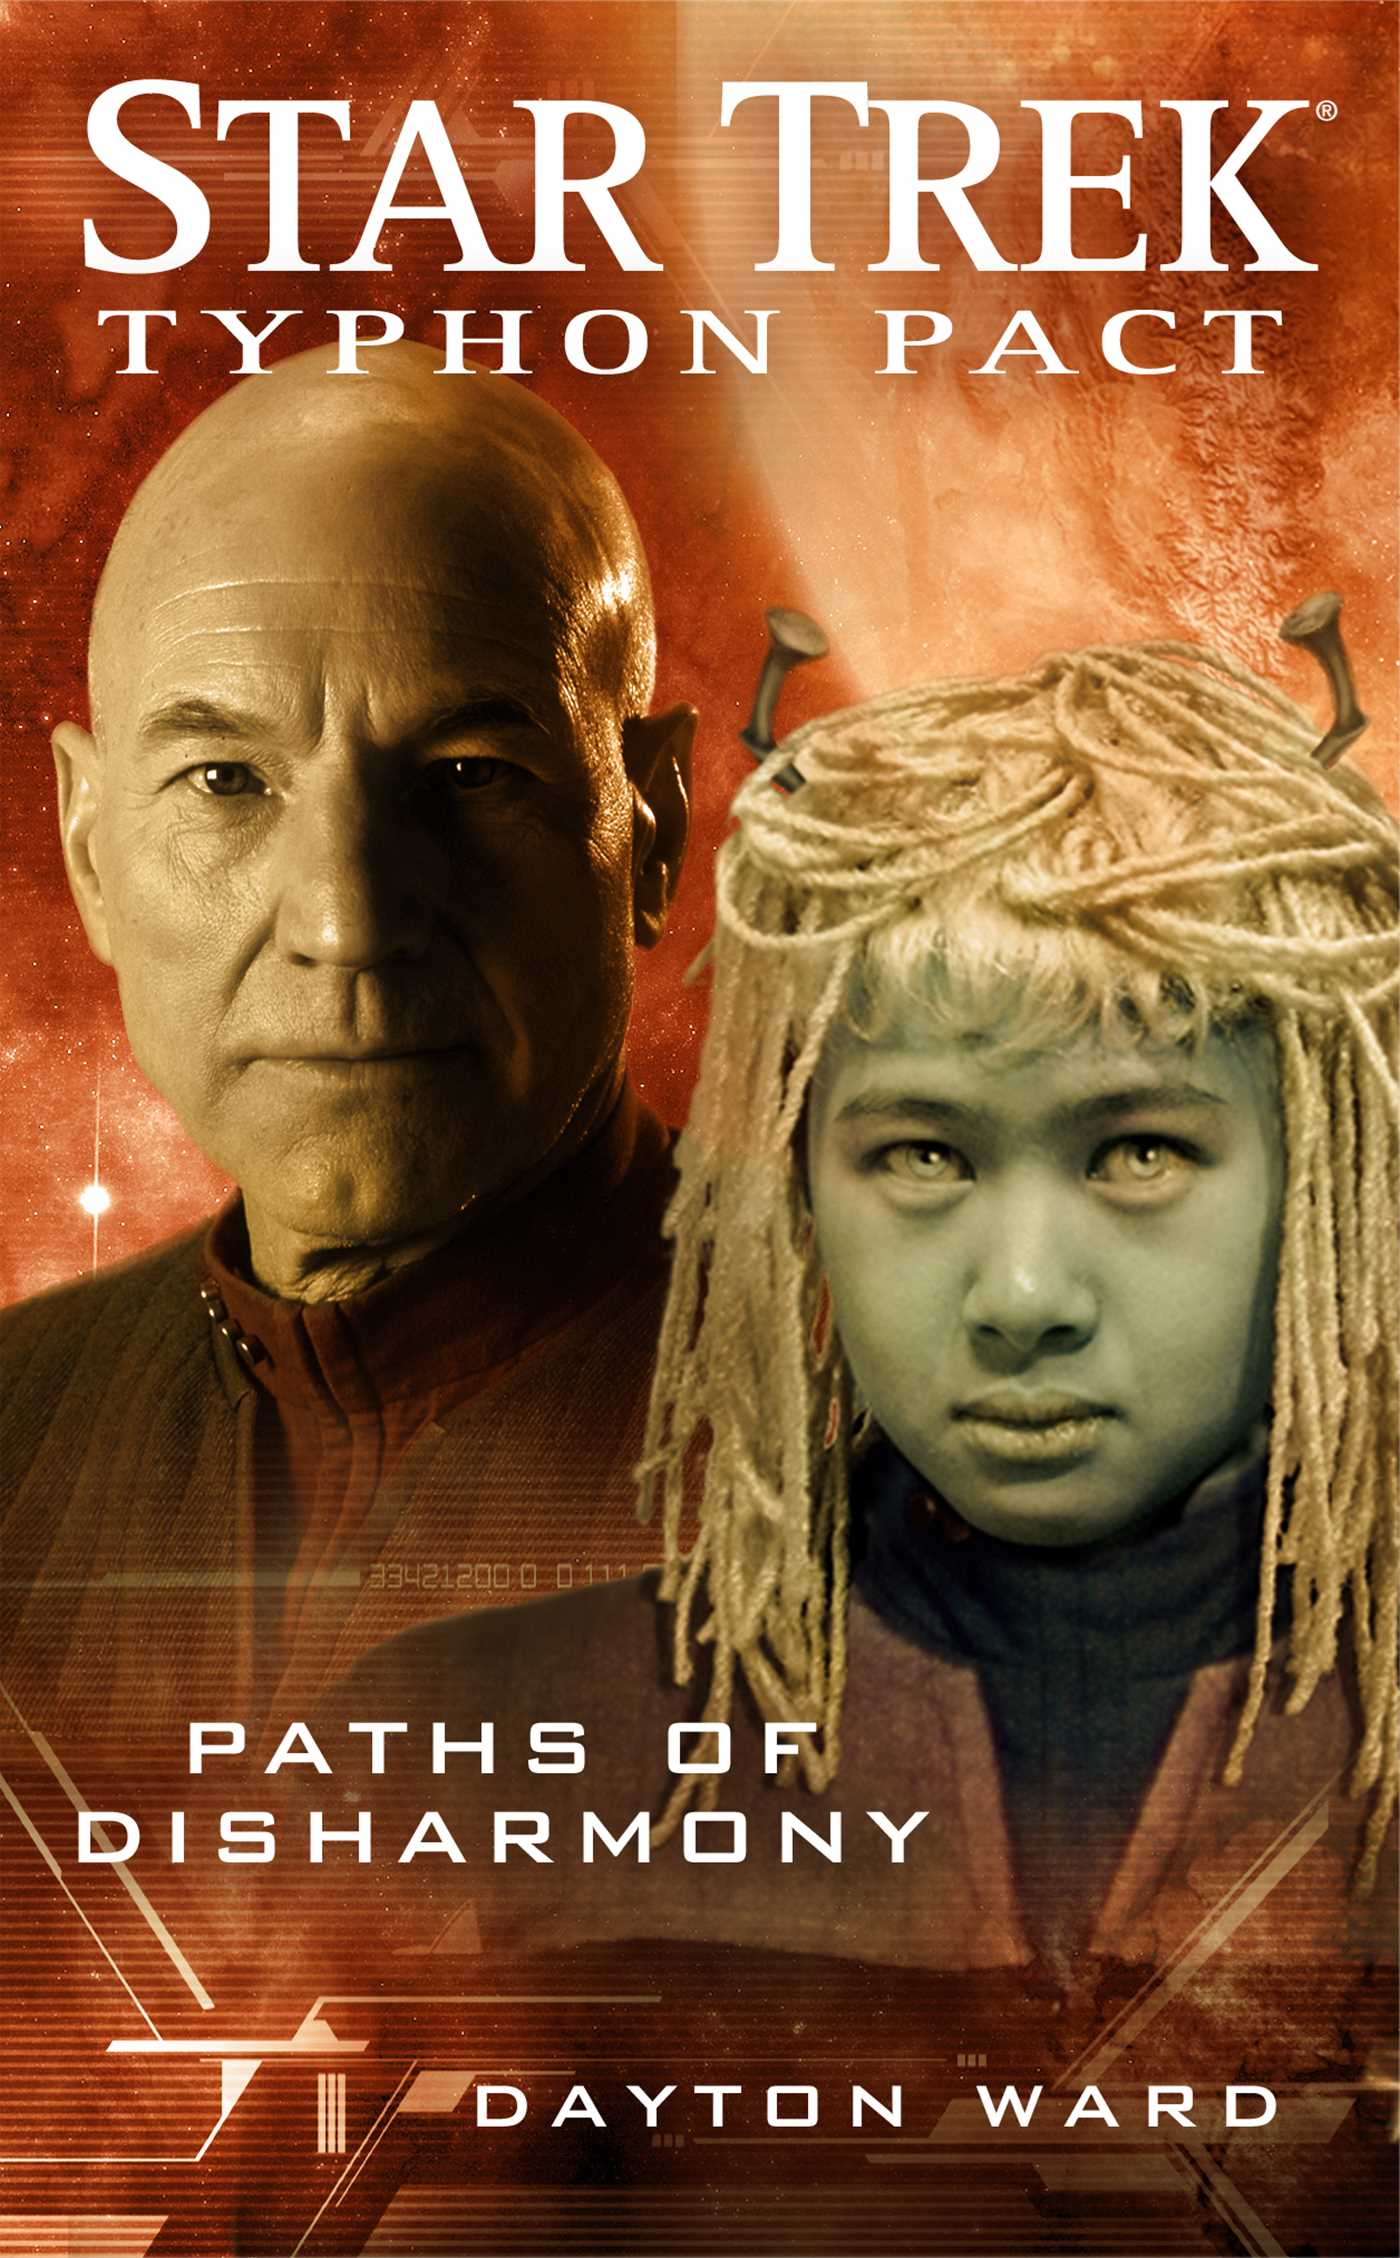 Star-trek-typhon-pact-4-paths-of-disharmony-9781439191668_hr